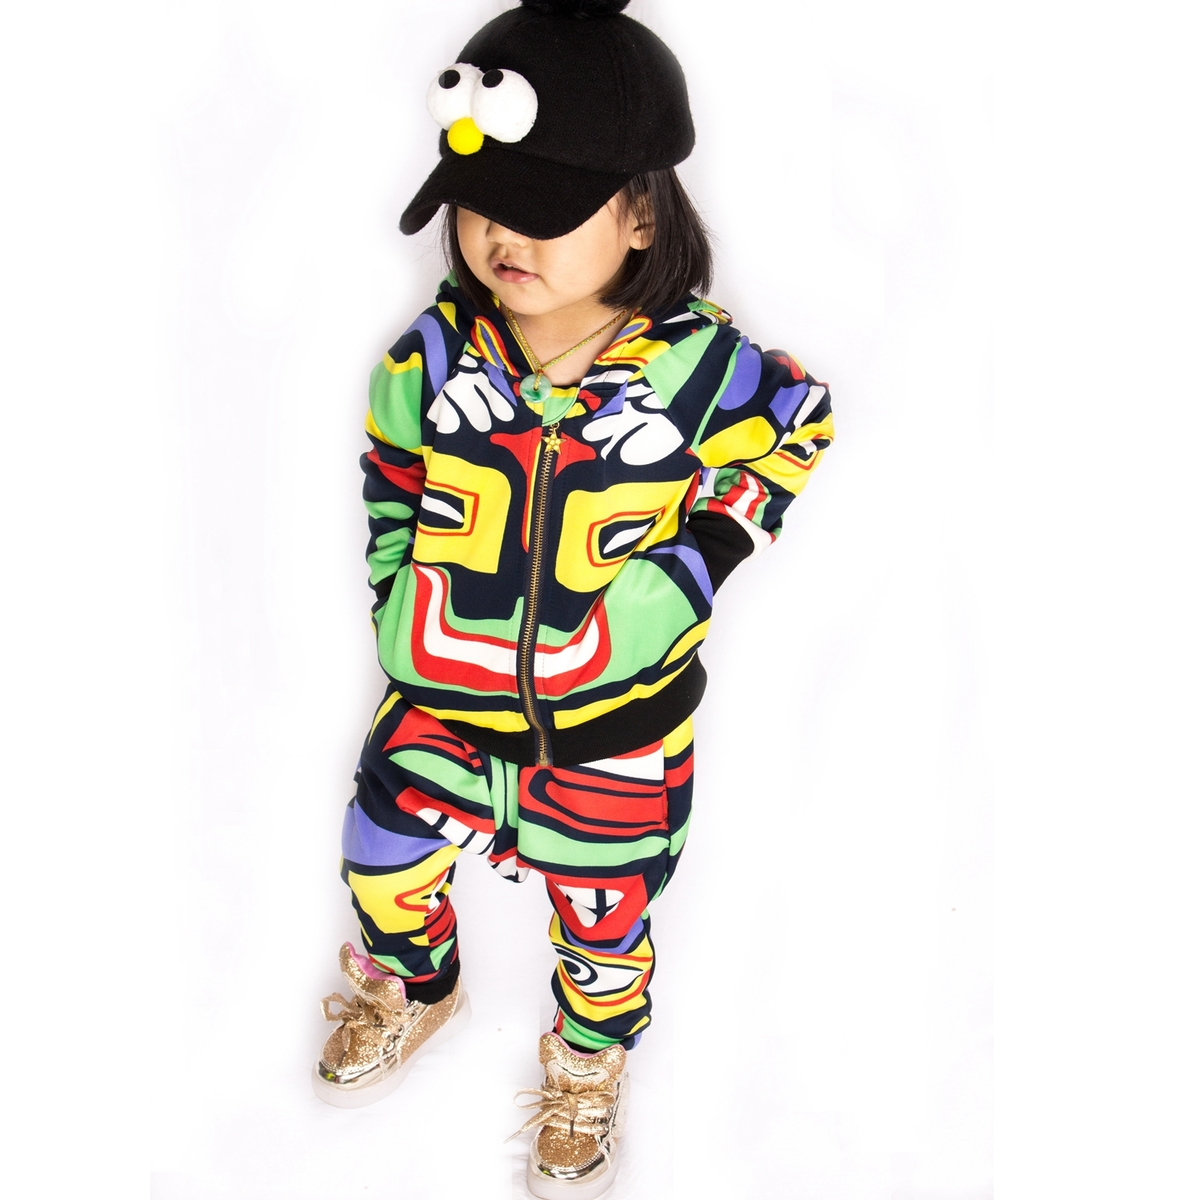 New fashion maya children's clothing set dance wear Costumes Jamaica Totem kids sport suits Hip Hop harem pants & sweatshirt hiseeu 720p hd wireless ip camera wi fi night vision wifi camera p2p ip network camera home security cctv camera baby monitor